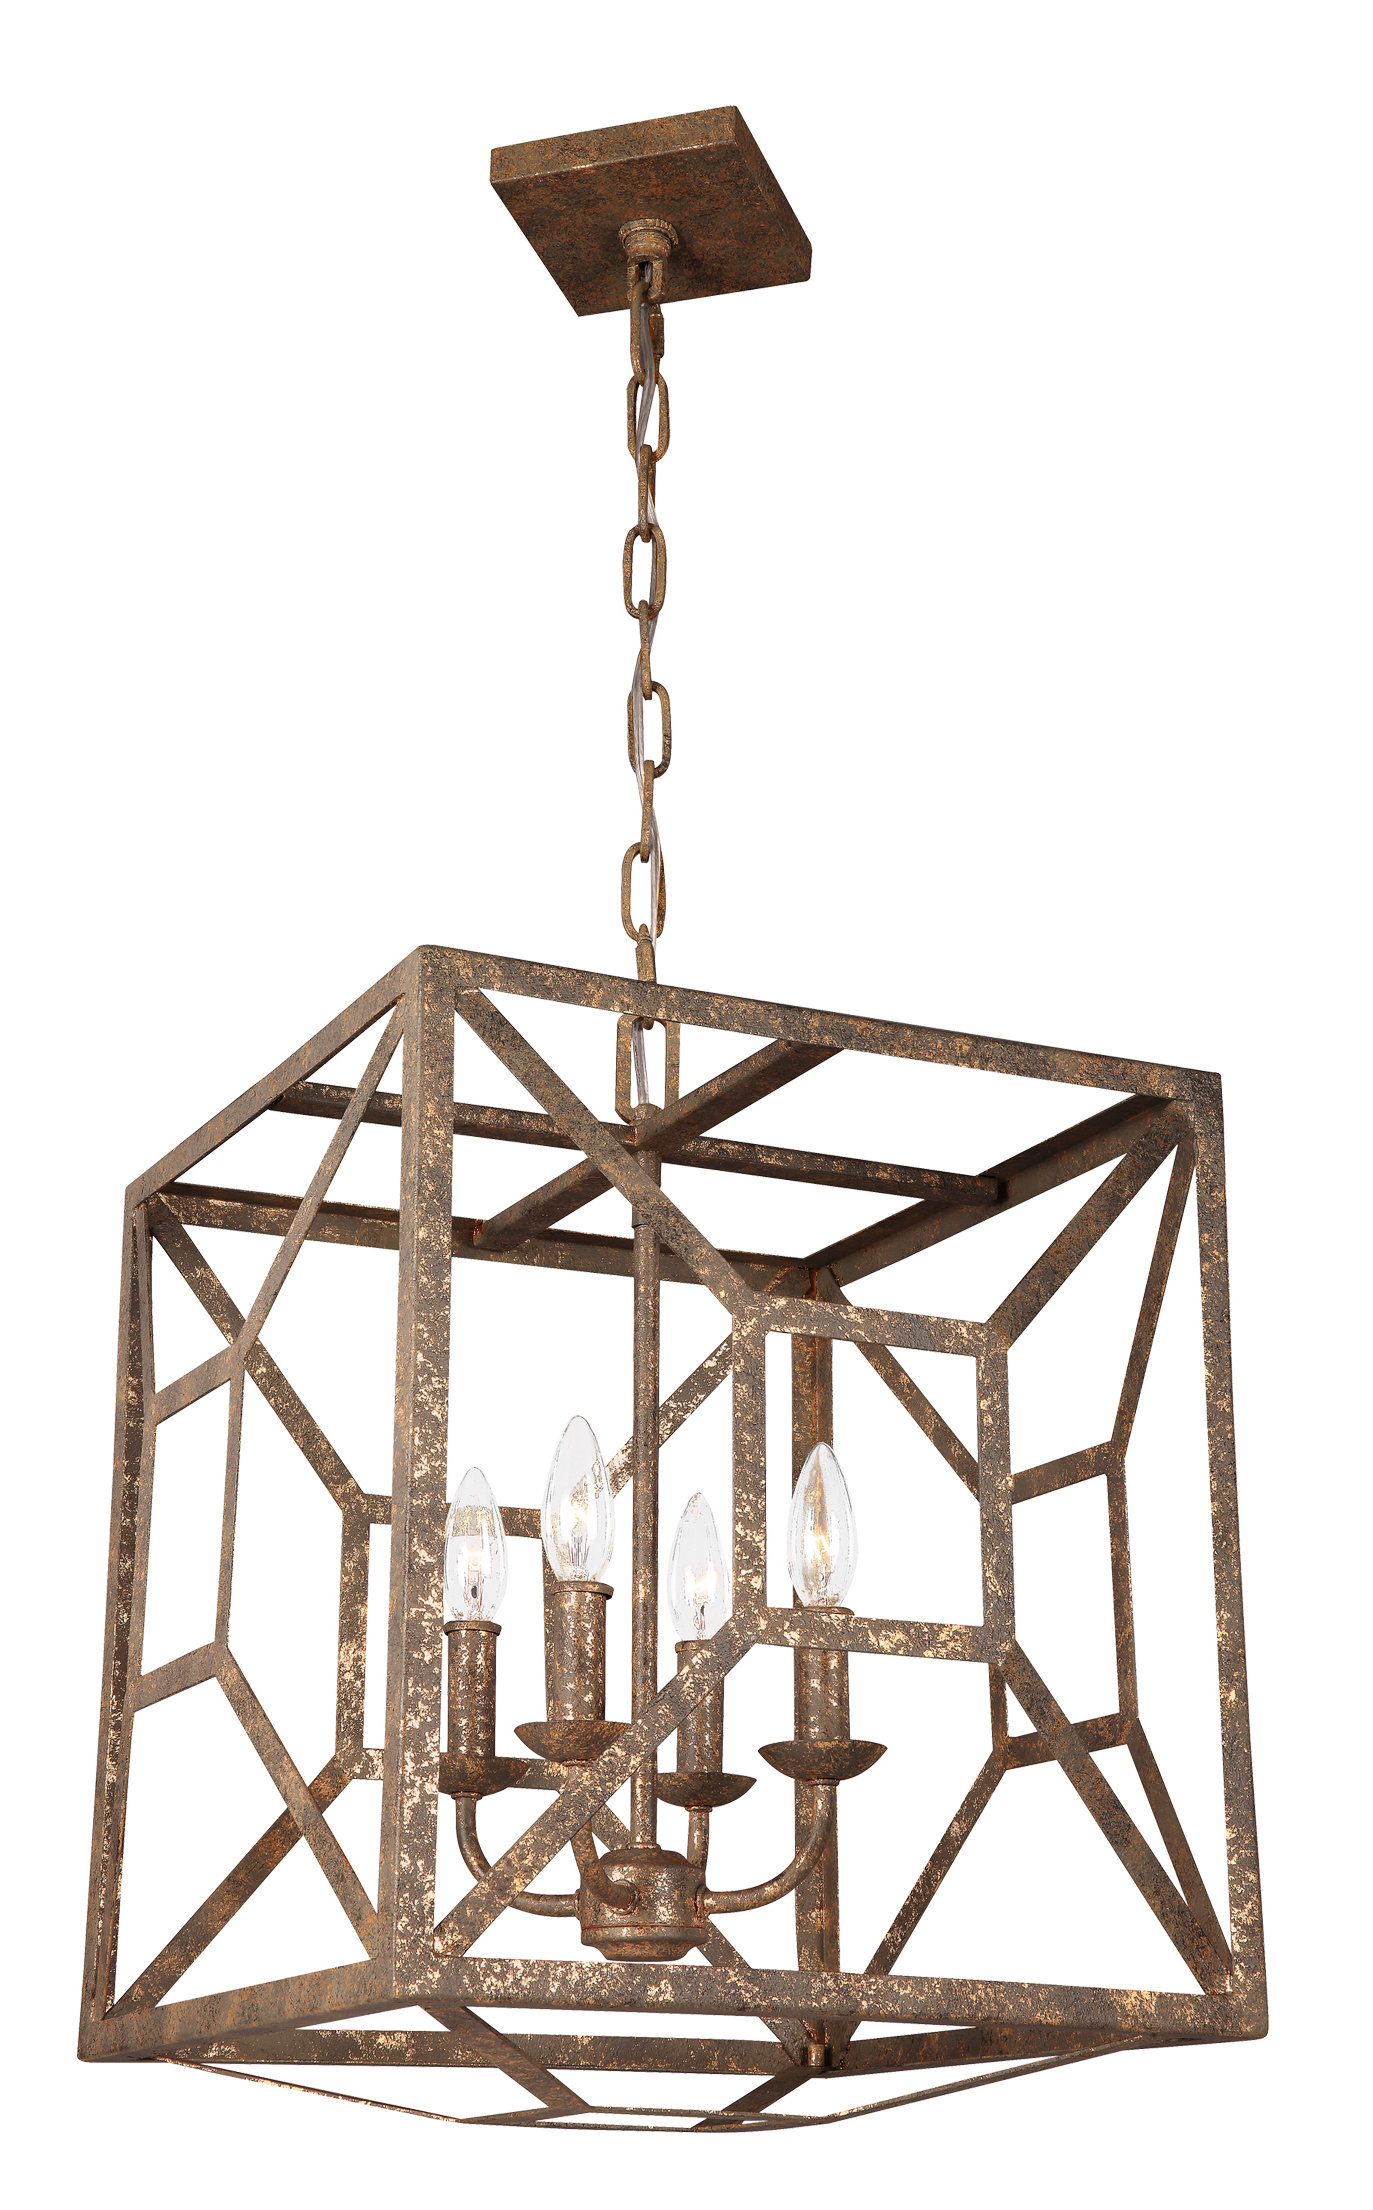 Gracie Oaks Jayanth 4-Light Square/rectangle Chandelier intended for Delon 4-Light Square Chandeliers (Image 15 of 30)